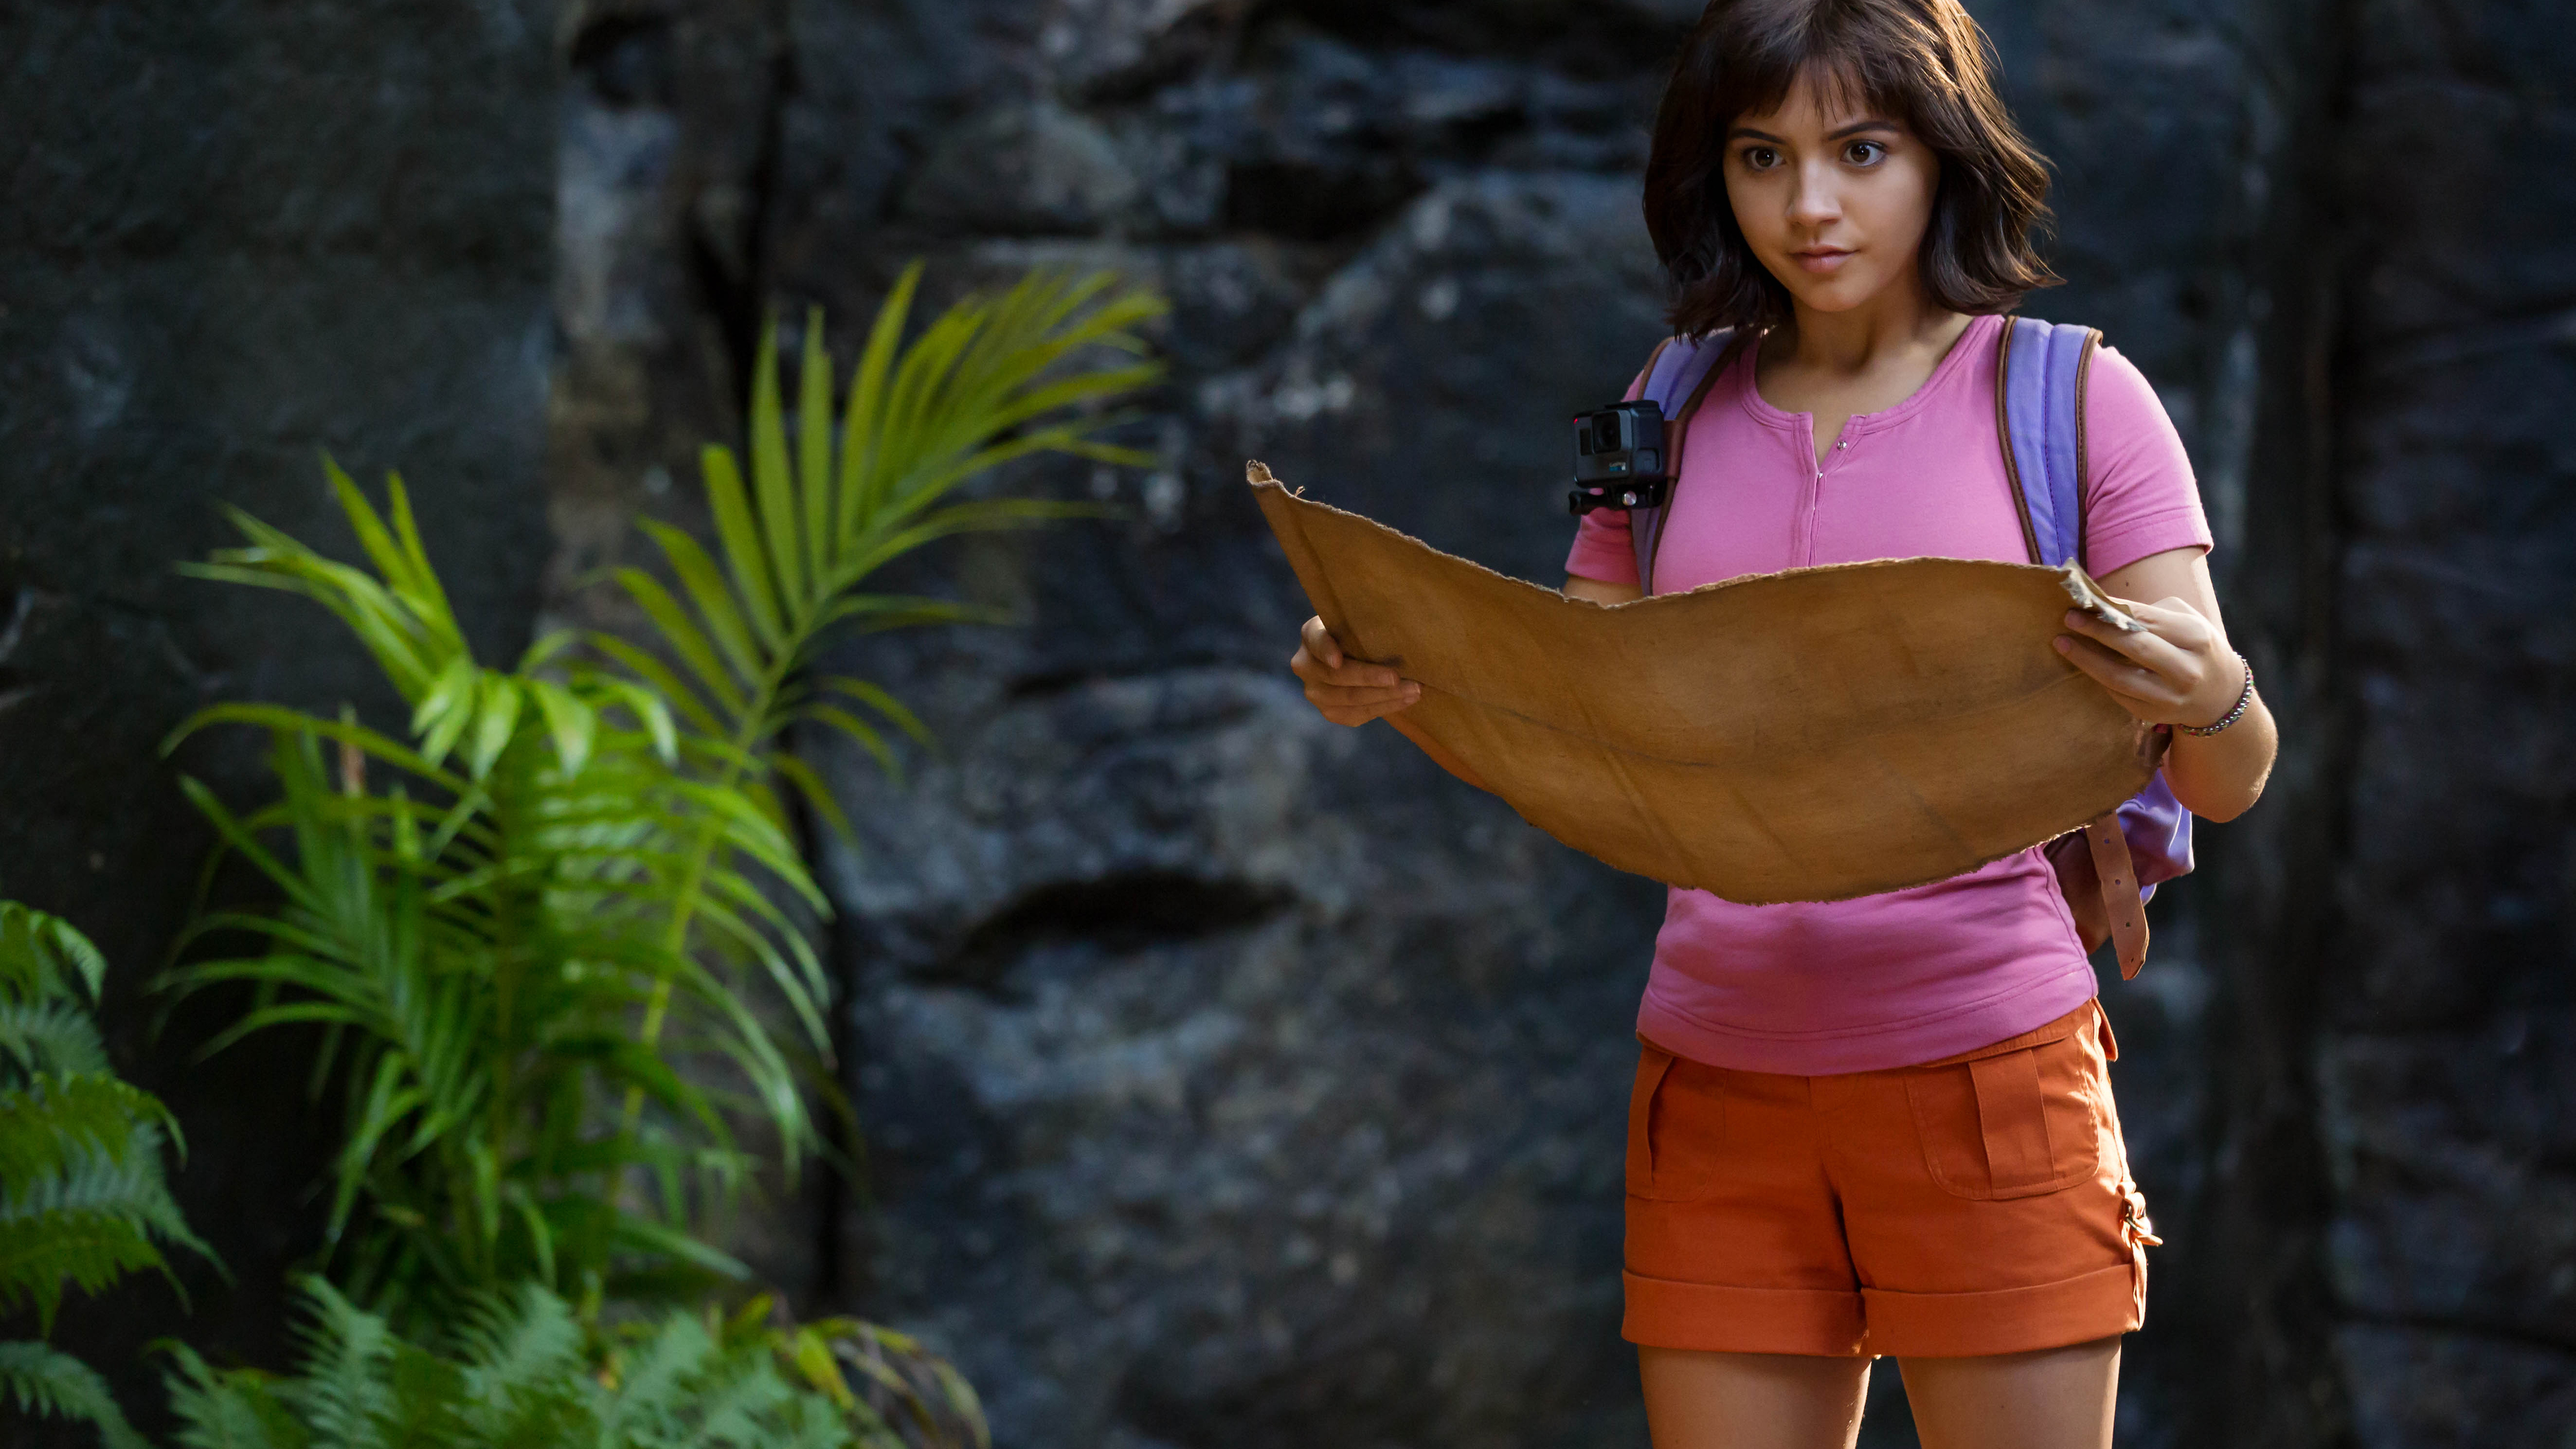 dora and the lost city of gold 2019 1563220846 - Dora And The Lost City Of Gold 2019 - movies wallpapers, isabela moner wallpapers, hd-wallpapers, dora the explorer wallpapers, dora and the lost city of gold wallpapers, 5k wallpapers, 4k-wallpapers, 2019 movies wallpapers